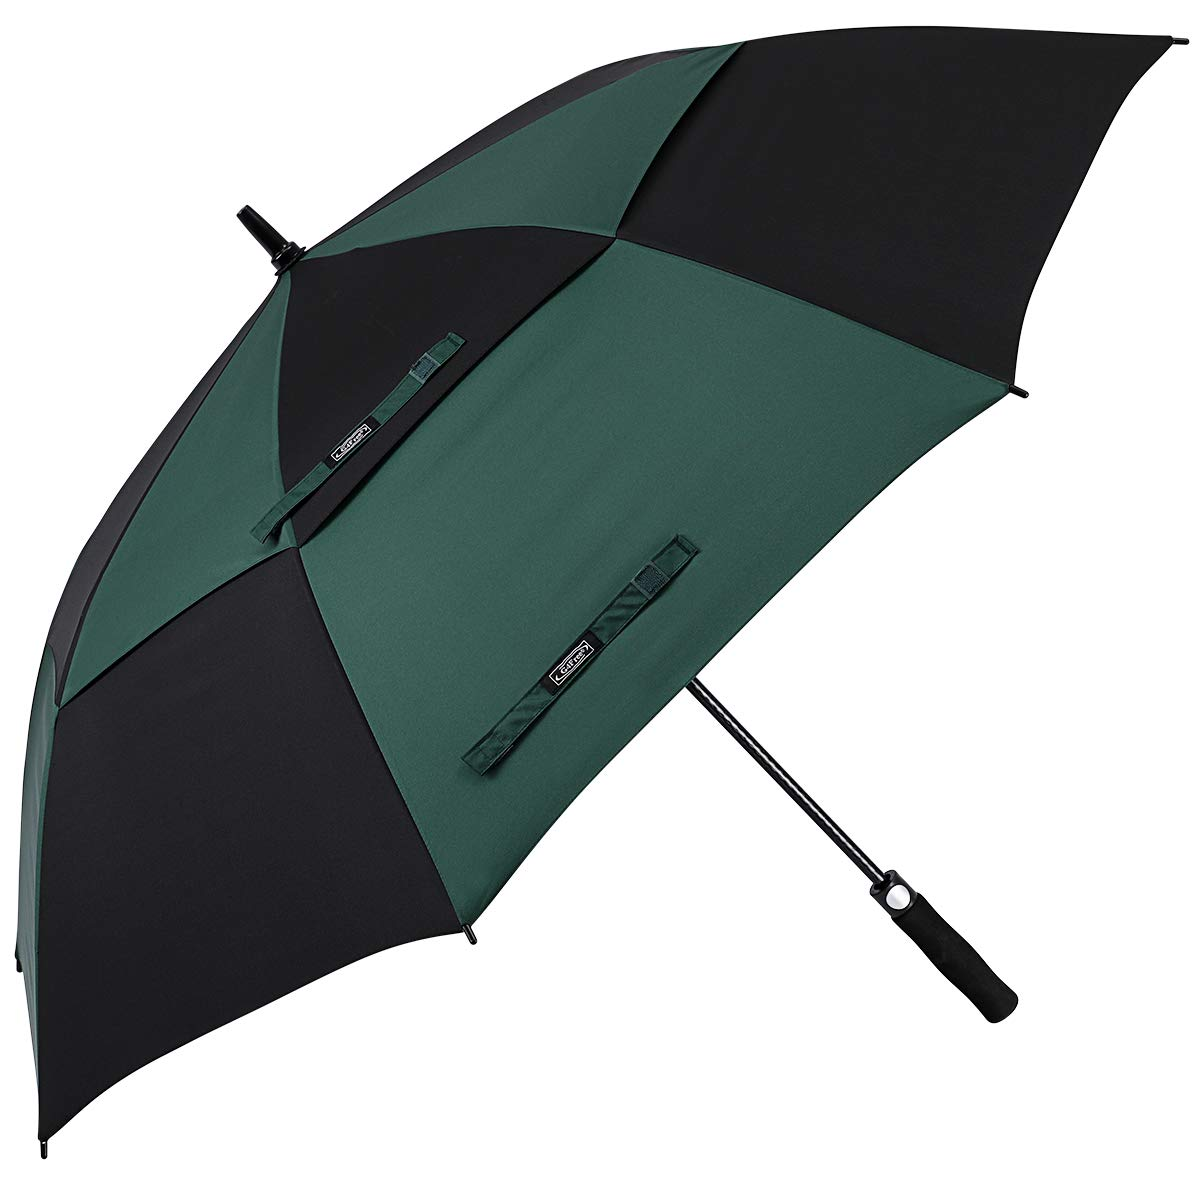 G4Free 68 Inch Automatic Open Golf Umbrella Double Canopy Extra Large Oversize Windproof Waterproof Stick Umbrellas(Black/Dark Green) by G4Free